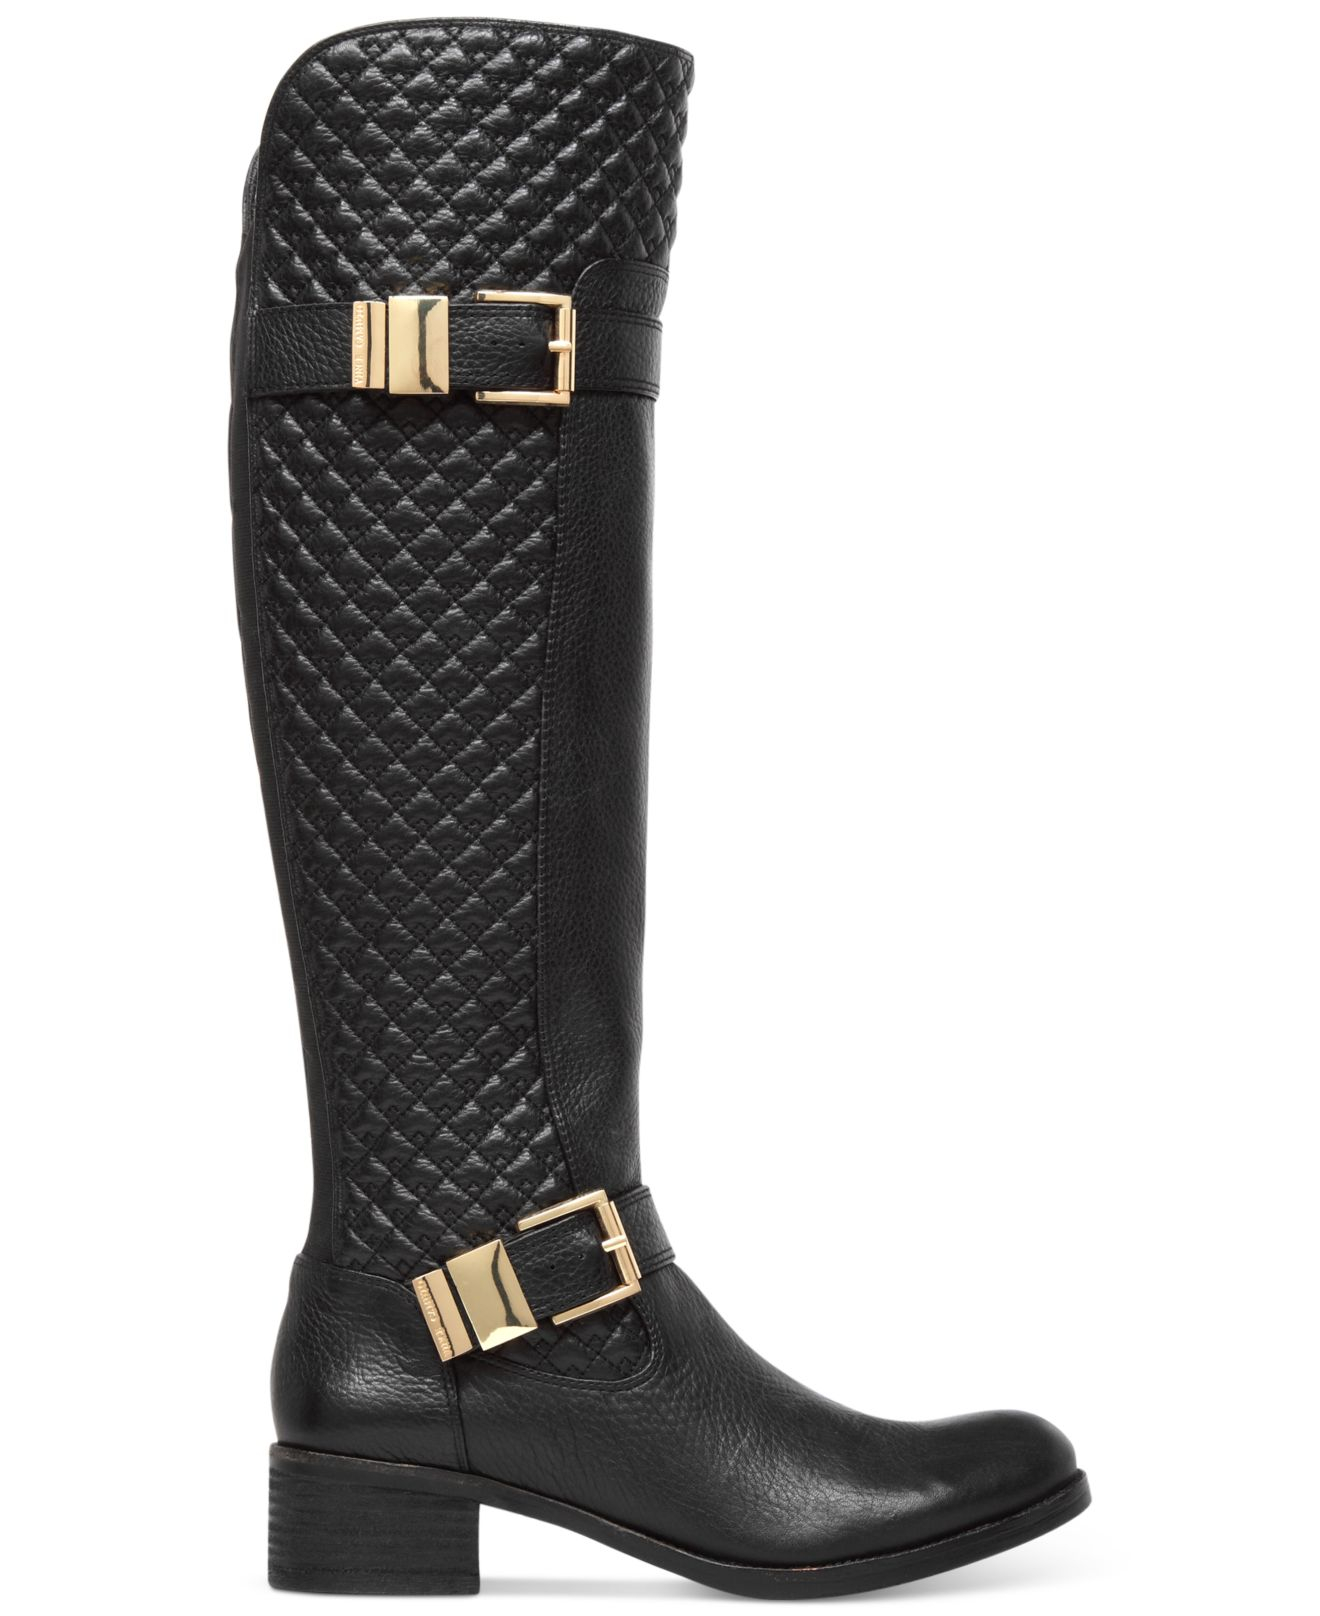 Vince camuto Faris Quilted Tall Boots in Black   Lyst : quilted tall boots - Adamdwight.com